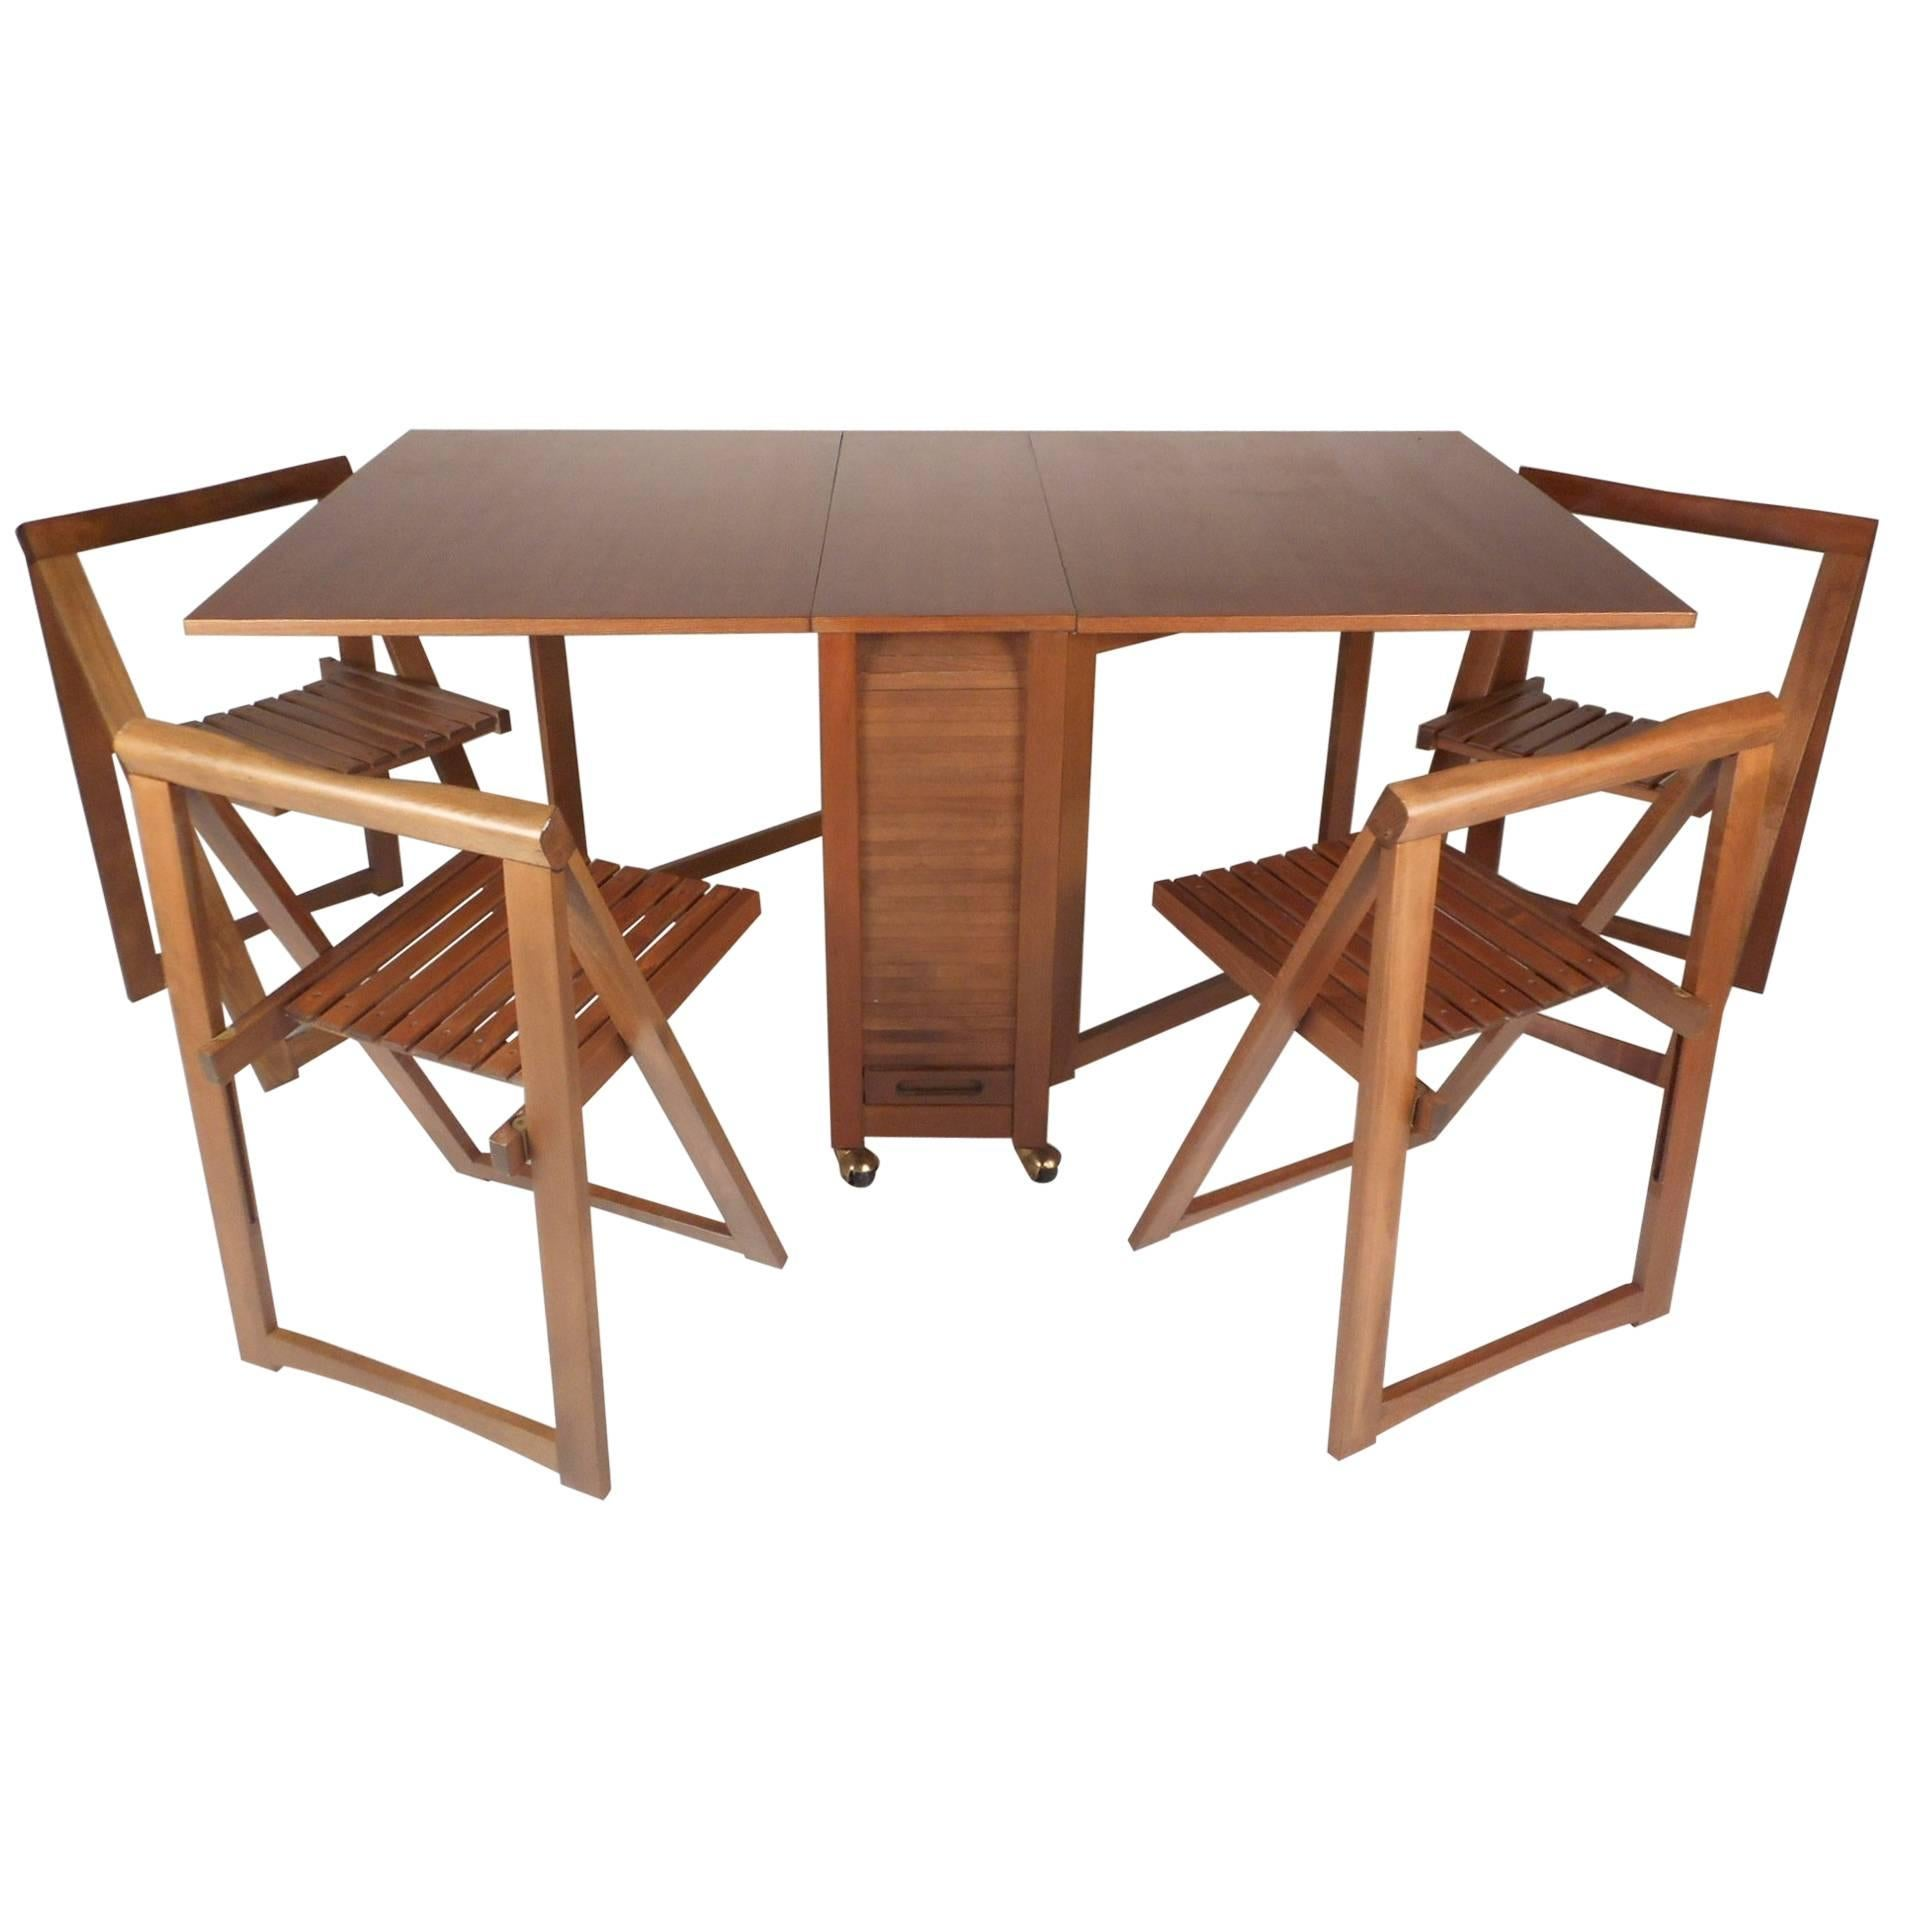 Modern Table And Chairs Mid Century Modern Drop Leaf Dining Table With Chairs